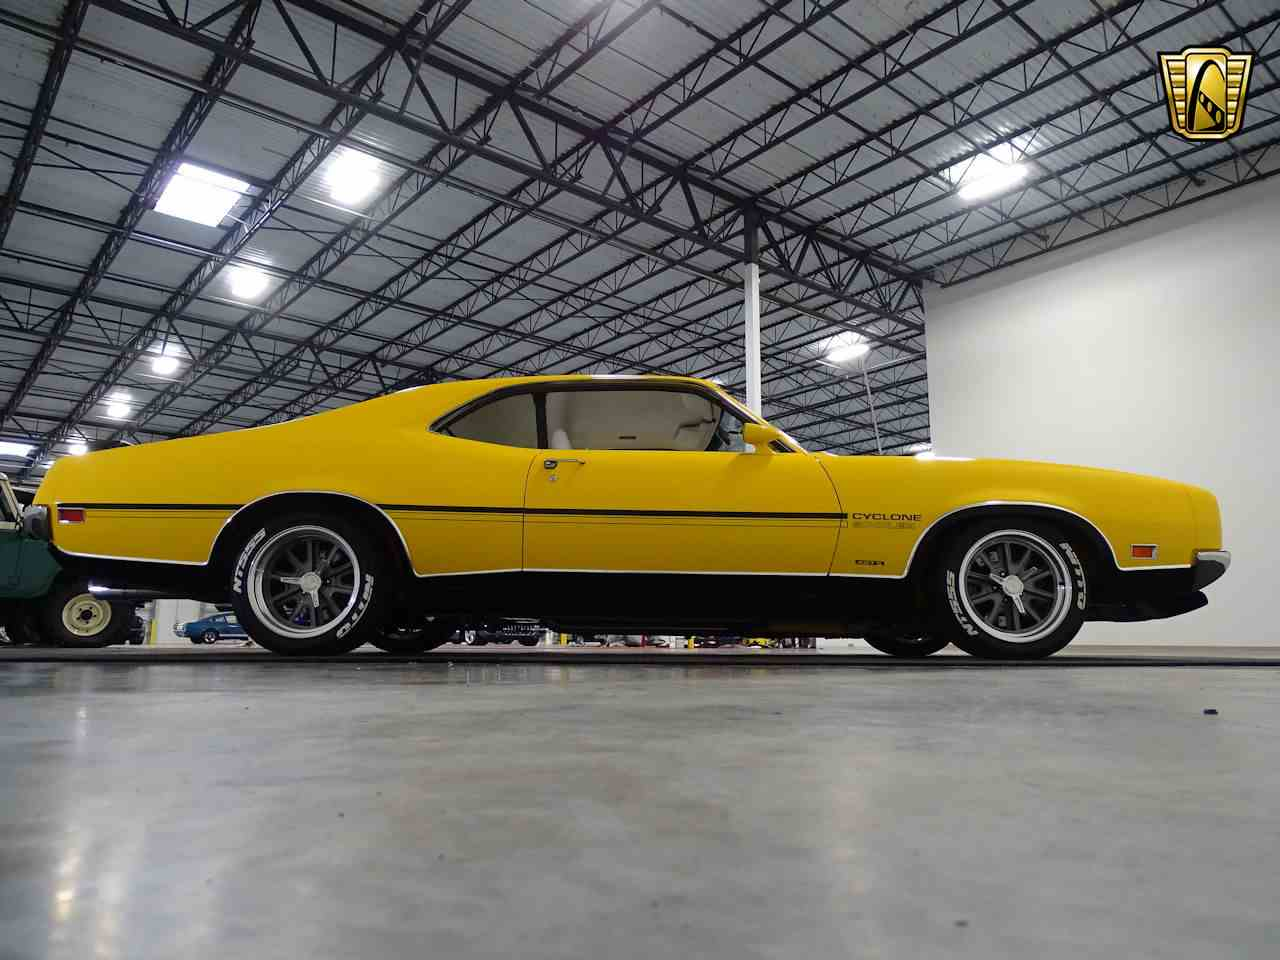 Large Picture of Classic '70 Cyclone Offered by Gateway Classic Cars - Houston - MA58